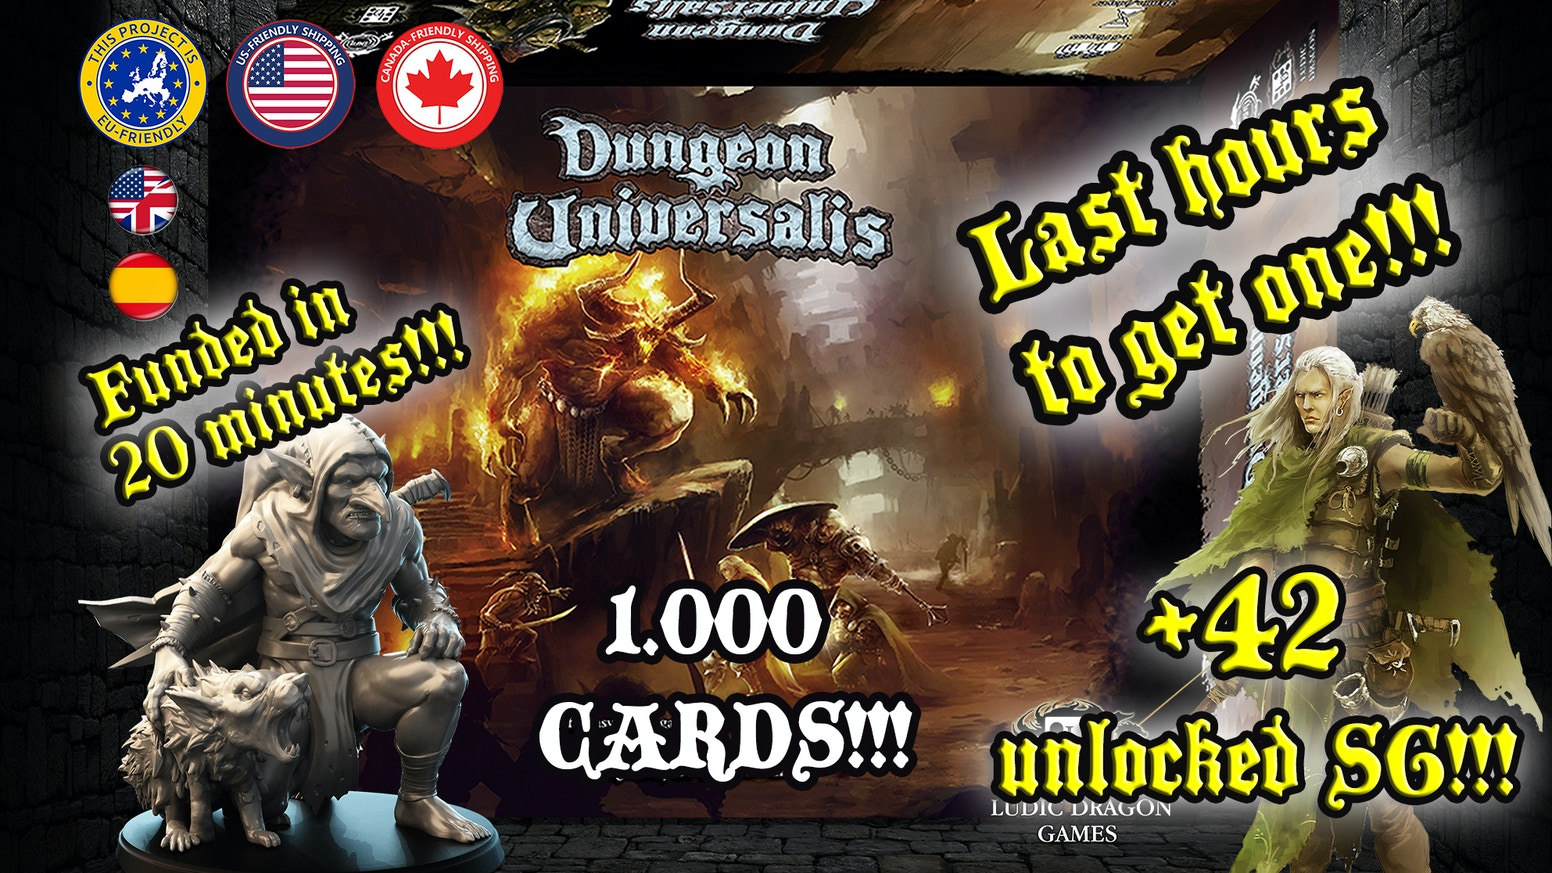 Dungeon Universalis by Ludic Dragon Games — Kickstarter